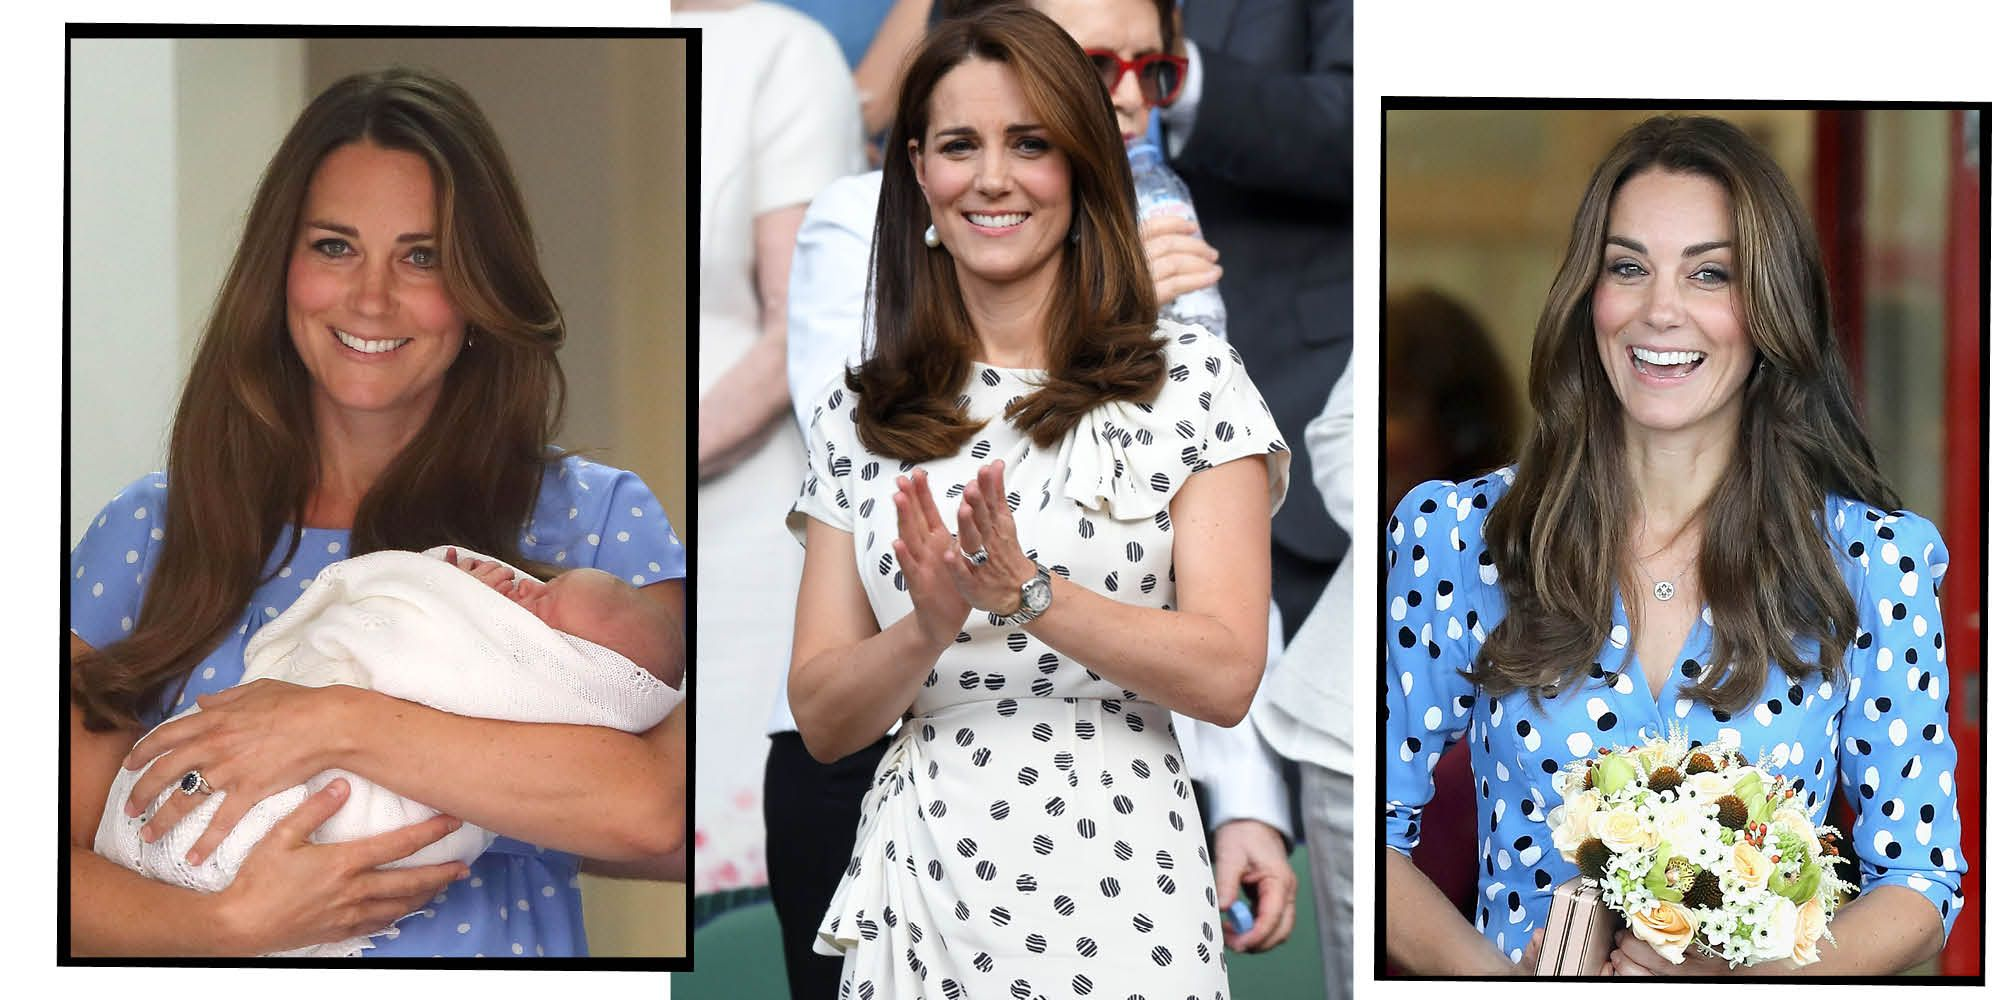 Kate Middleton in polka dots